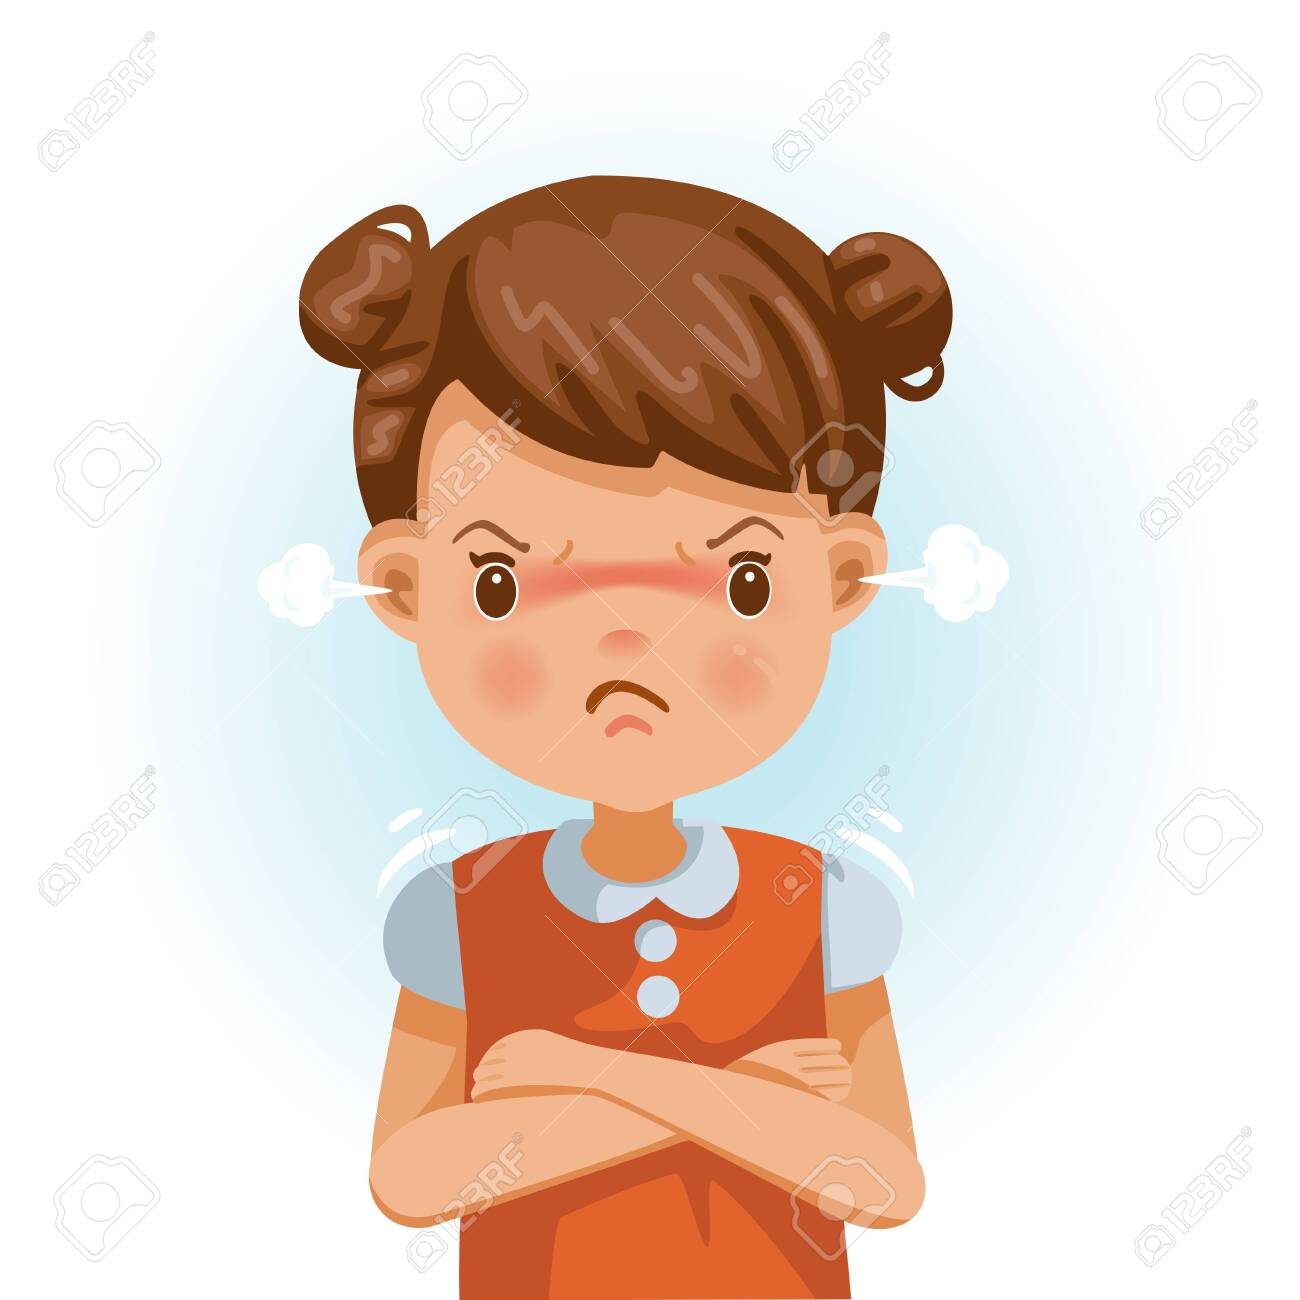 Angry Little Girl Child In A Red Shirt Is Expressing Anger Royalty Free Cliparts Vectors And Stock Illustration Image 146535442